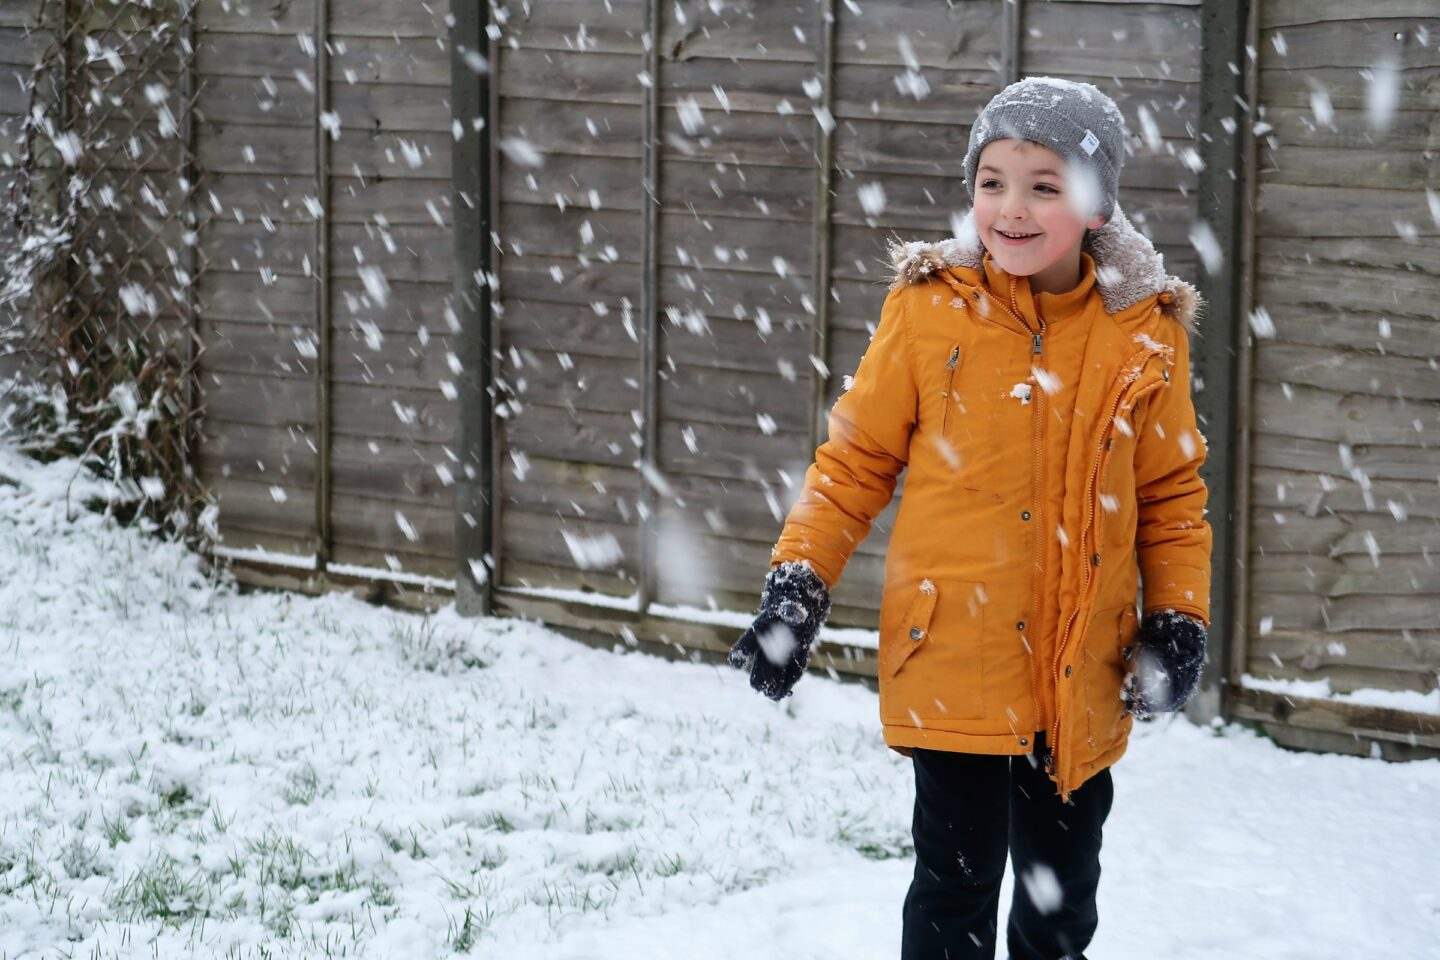 Boy in the snow in a yellow coat